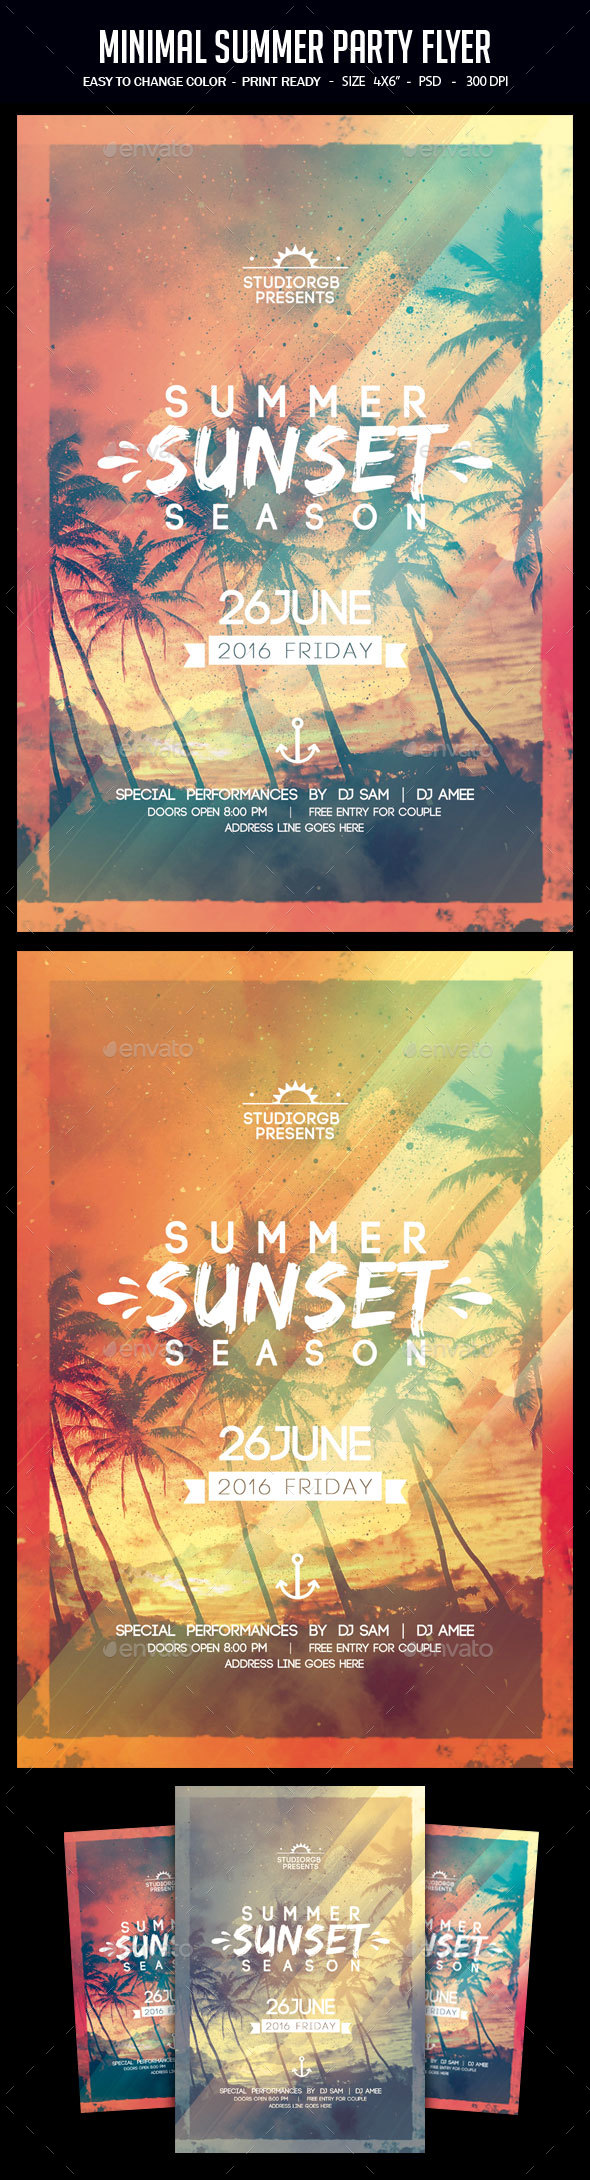 Minimal Summer Party Flyer - Clubs & Parties Events